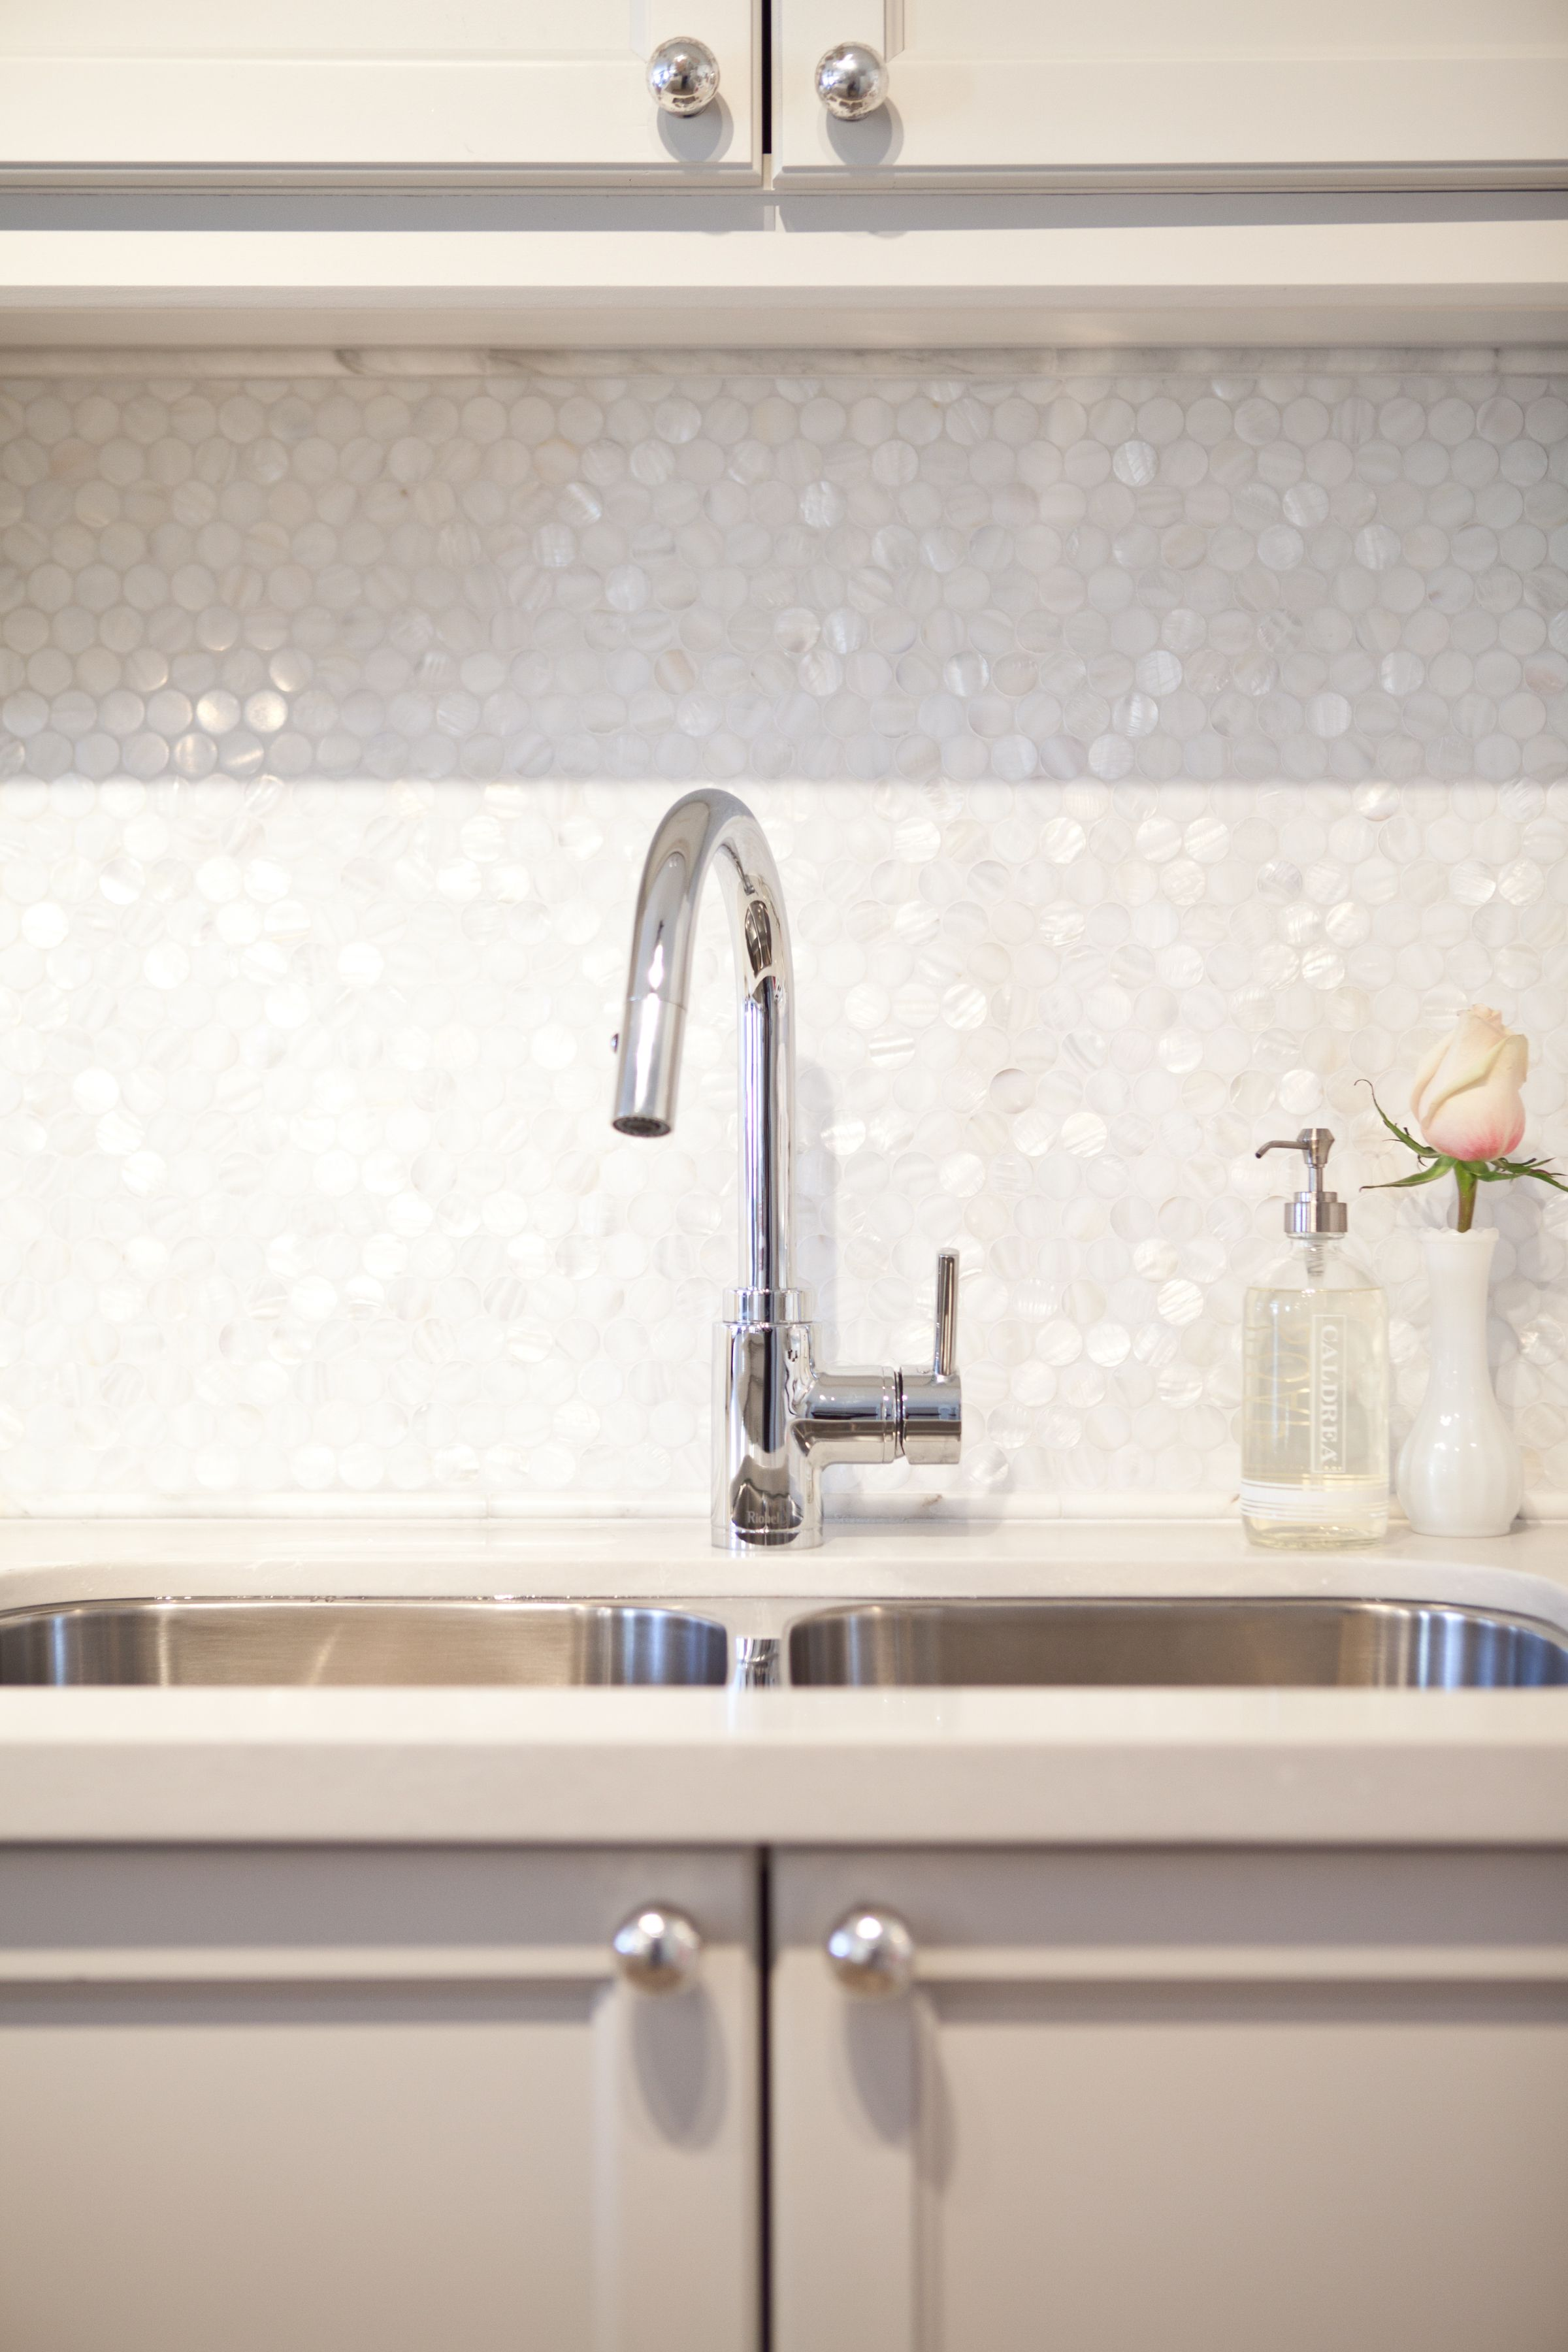 While I Absolutely Love The Long Textured Subway Tile Backsplash We Used In This Kitchen Revamp I Textured Tiles Kitchen Pearl Backsplash Textured Subway Tile